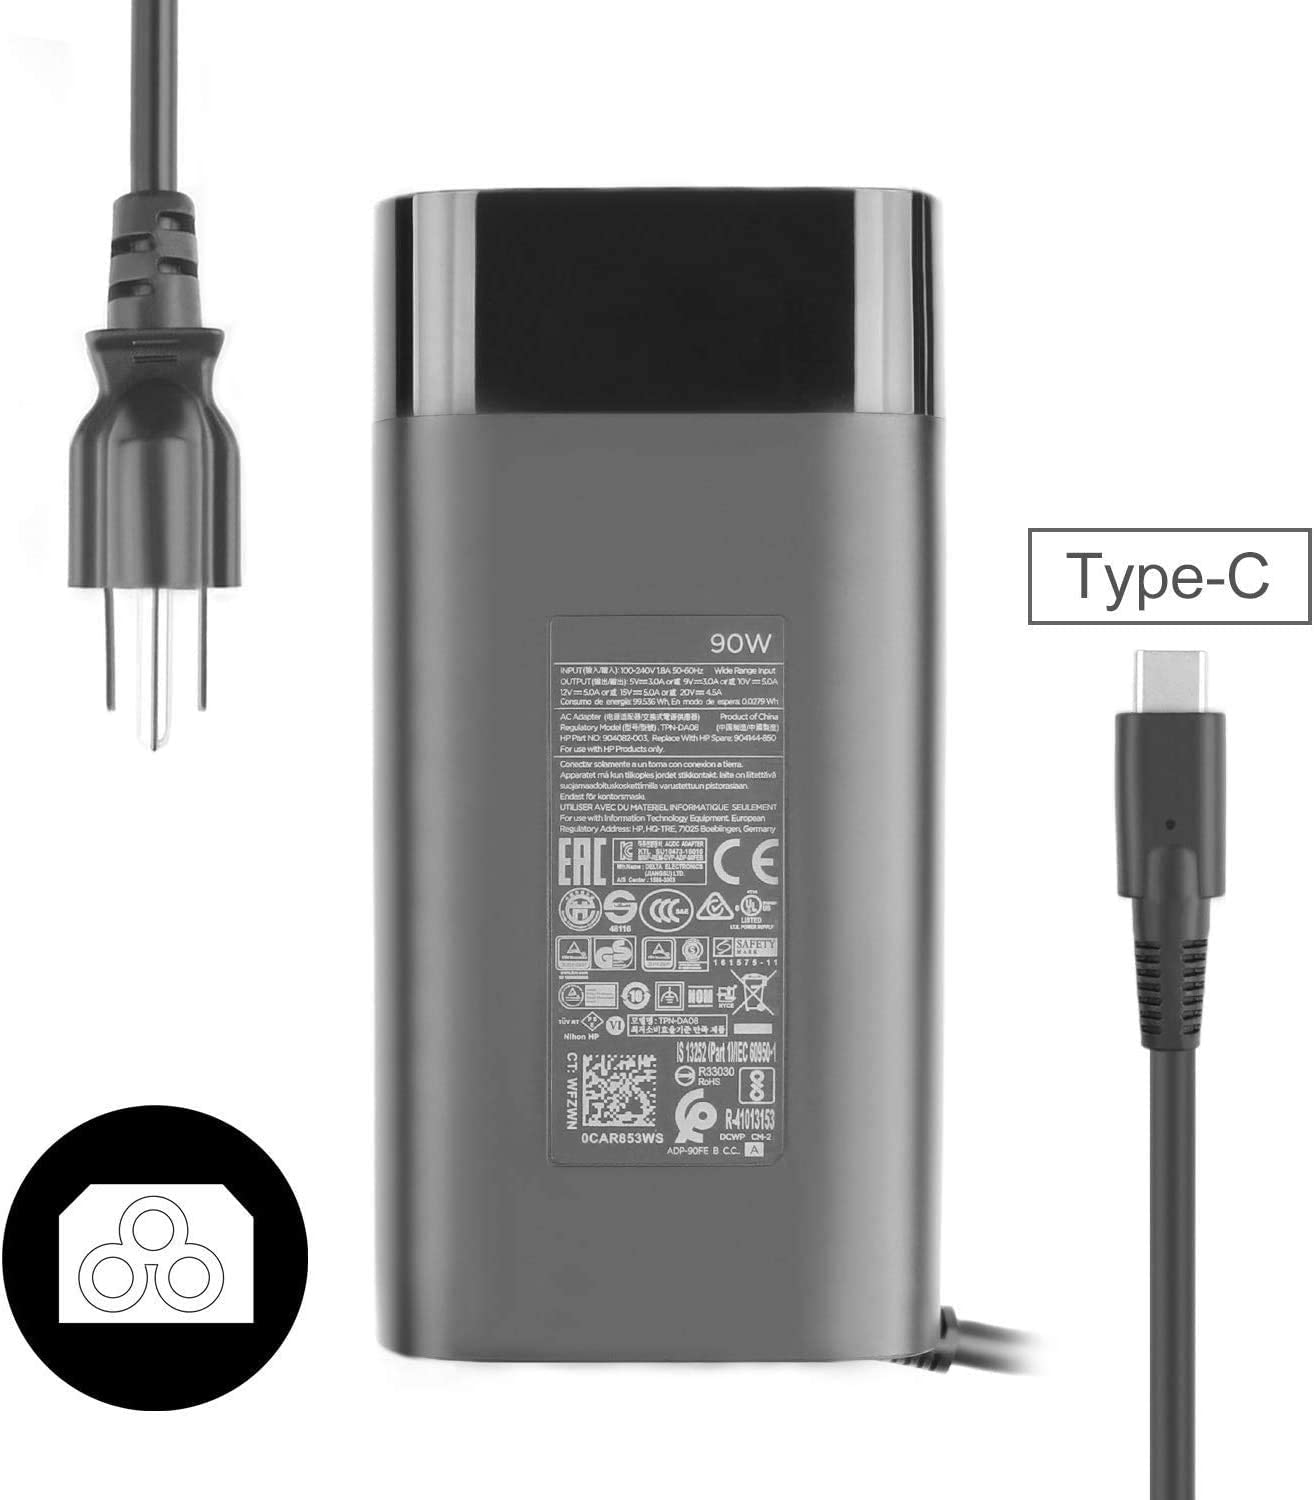 New Genuine Original 20V 4.5A 90W Type C Charger for HP USB-C TPN-DA08 904082-003 904144-850 ADP-90FE Notebook AC Adapter